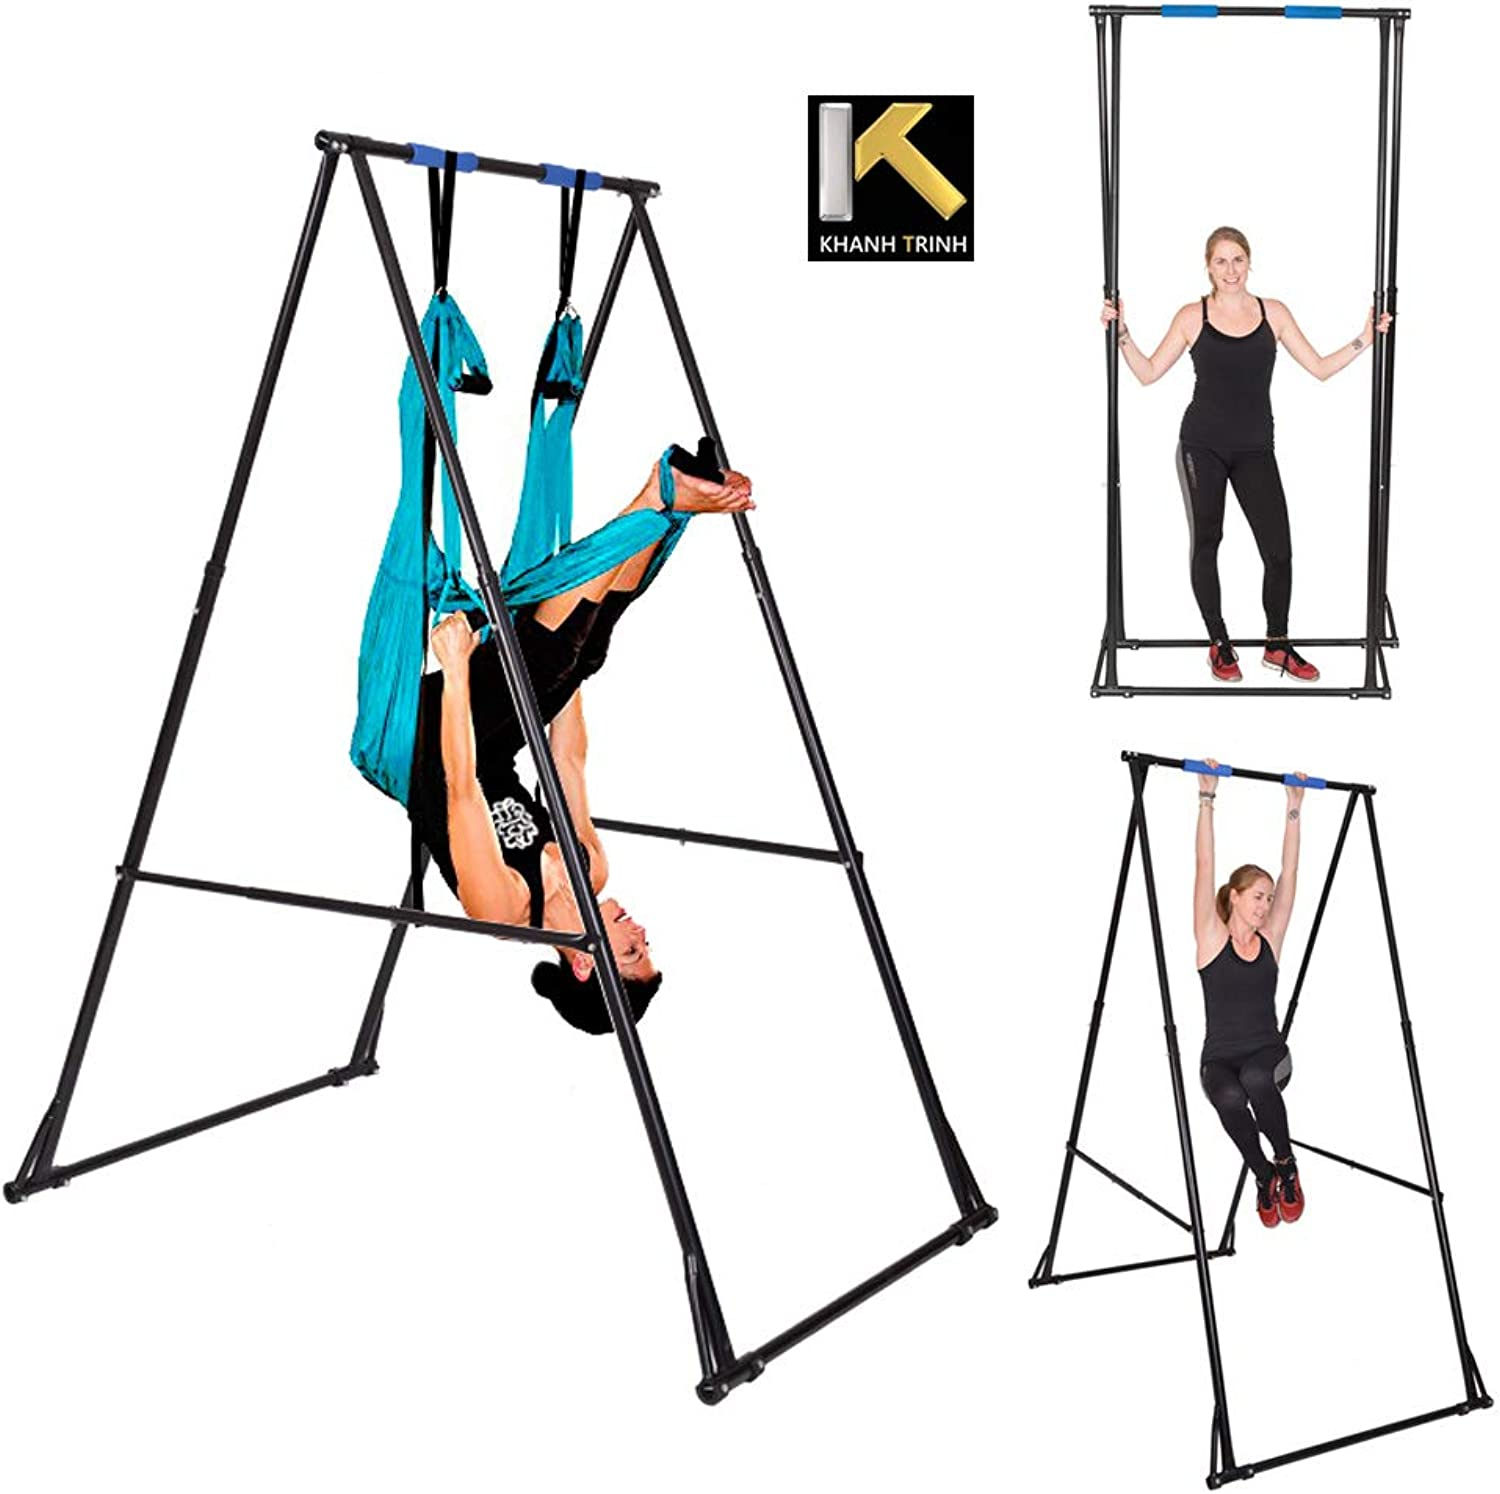 KT Indoor Outdoor Yoga Trapeze Stand Frame. Foldable, Portable, Height Adjustable Trapeze Yoga Swing Stand Frame. Stable and Durable Flying Yoga Frame Stand for Aerial Yoga